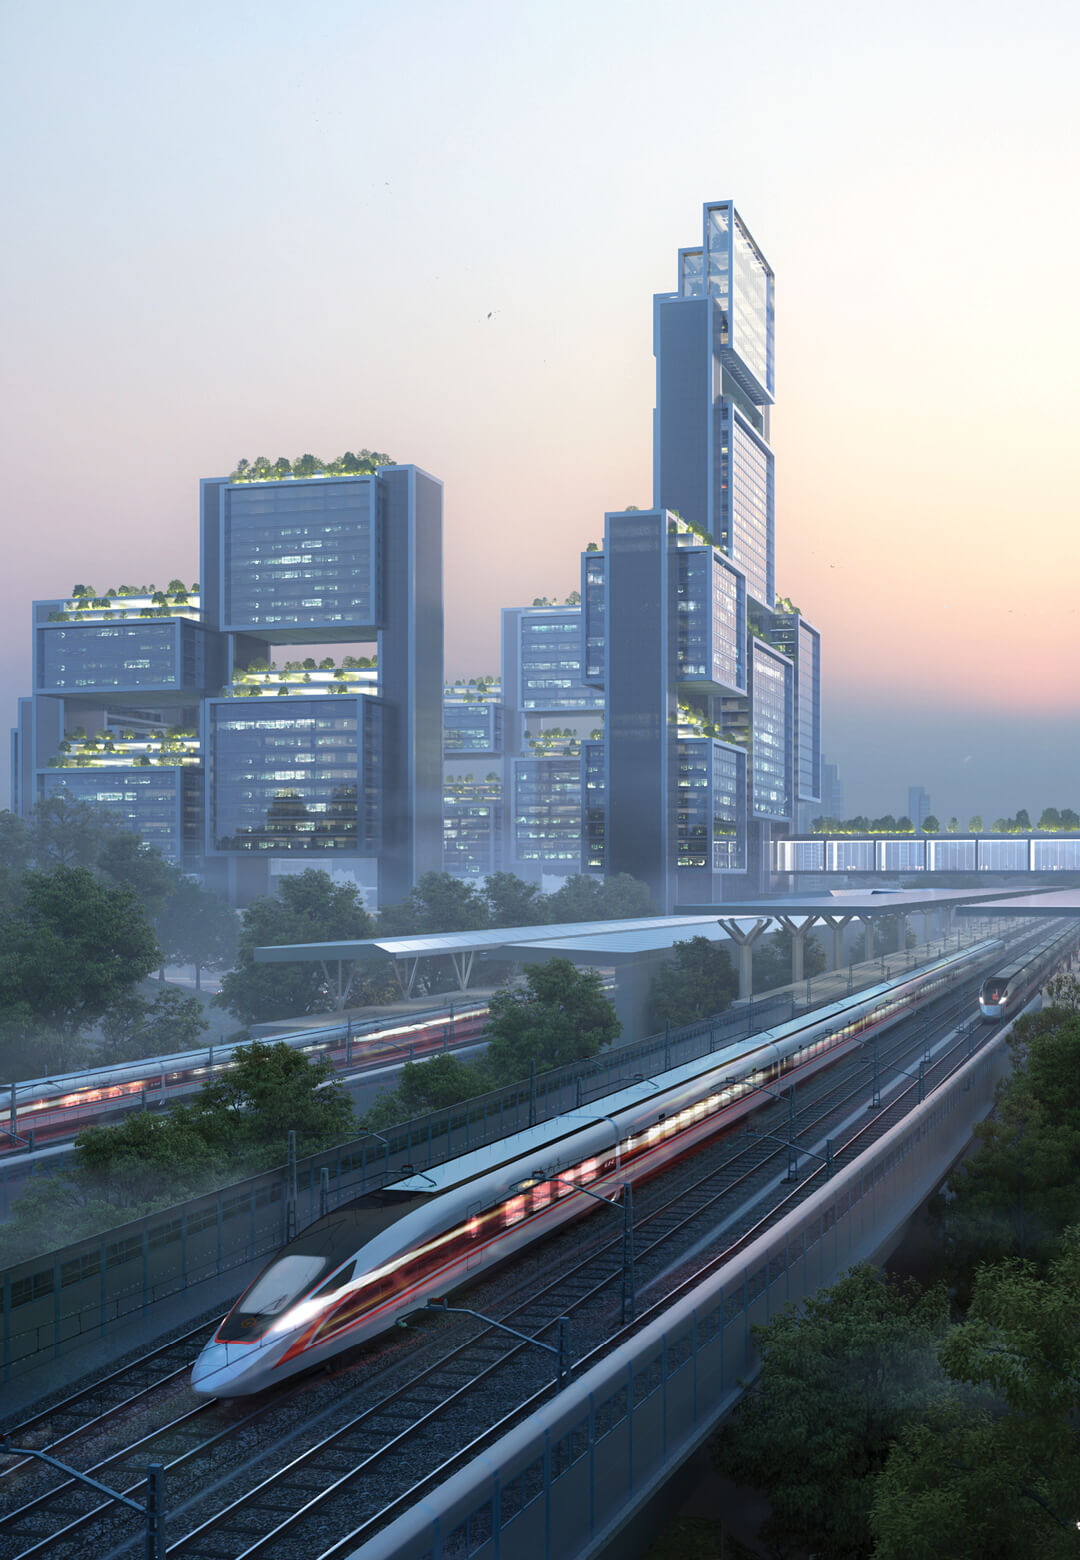 The Guangming Hub masterplan accommodates a robust infrastructure, effective transport networks and reliable public services | Guangming Hub Masterplan, Shenzen |Foster + Partners | STIRworld